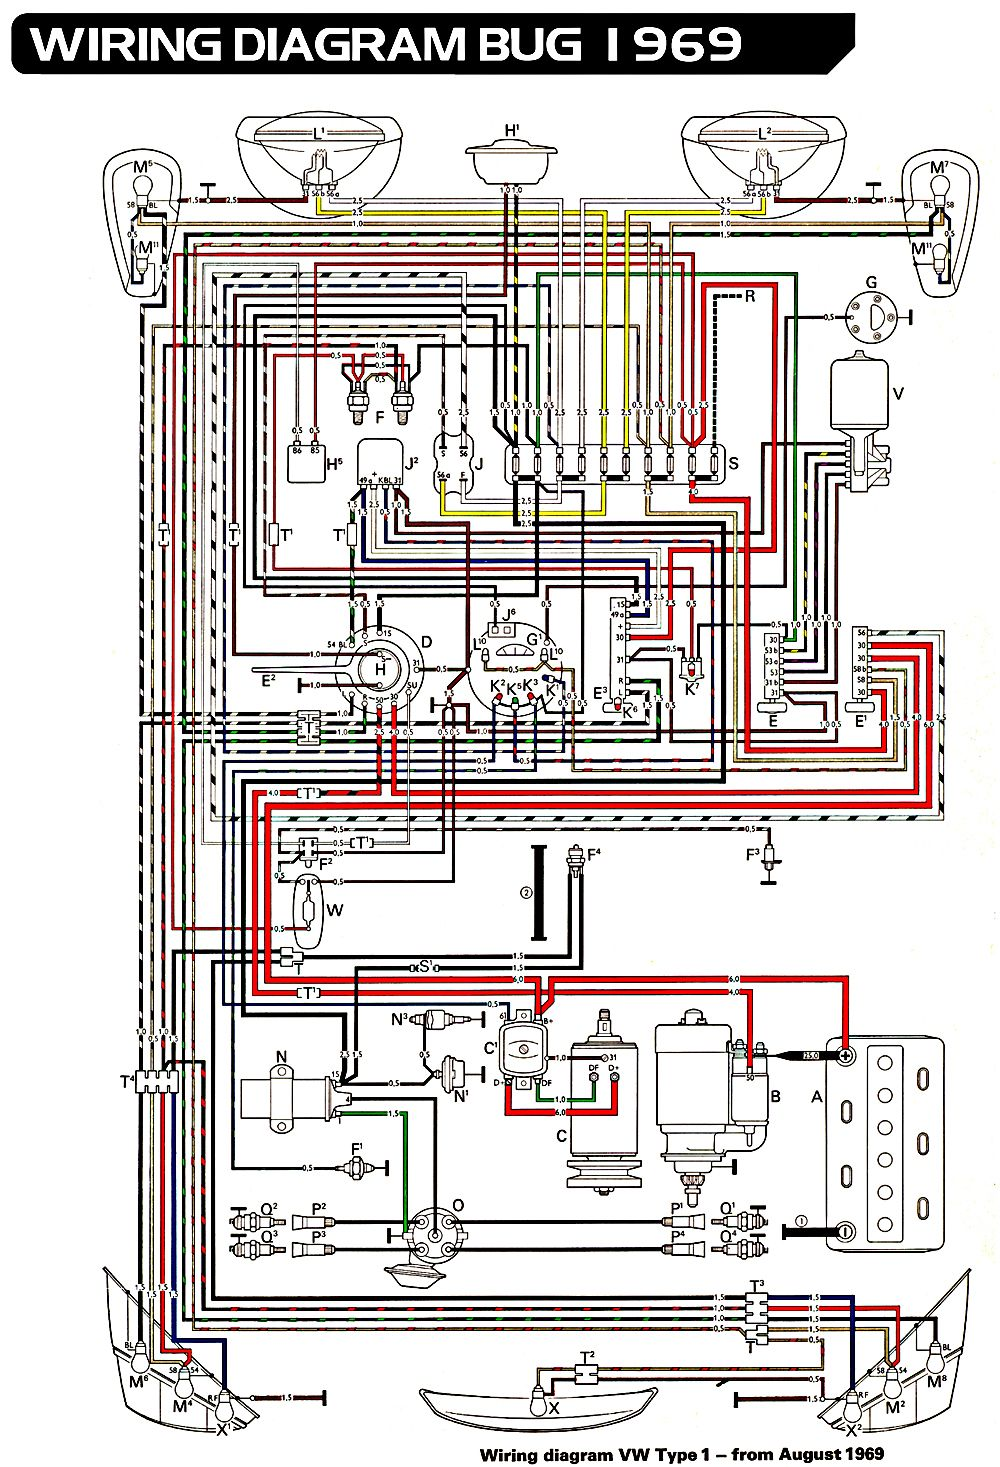 6d75c15875479254f26a32a8499d9044 volkswagen beetle wiring diagram 1966 vw beetle wiring vw bug wiring diagram at mifinder.co